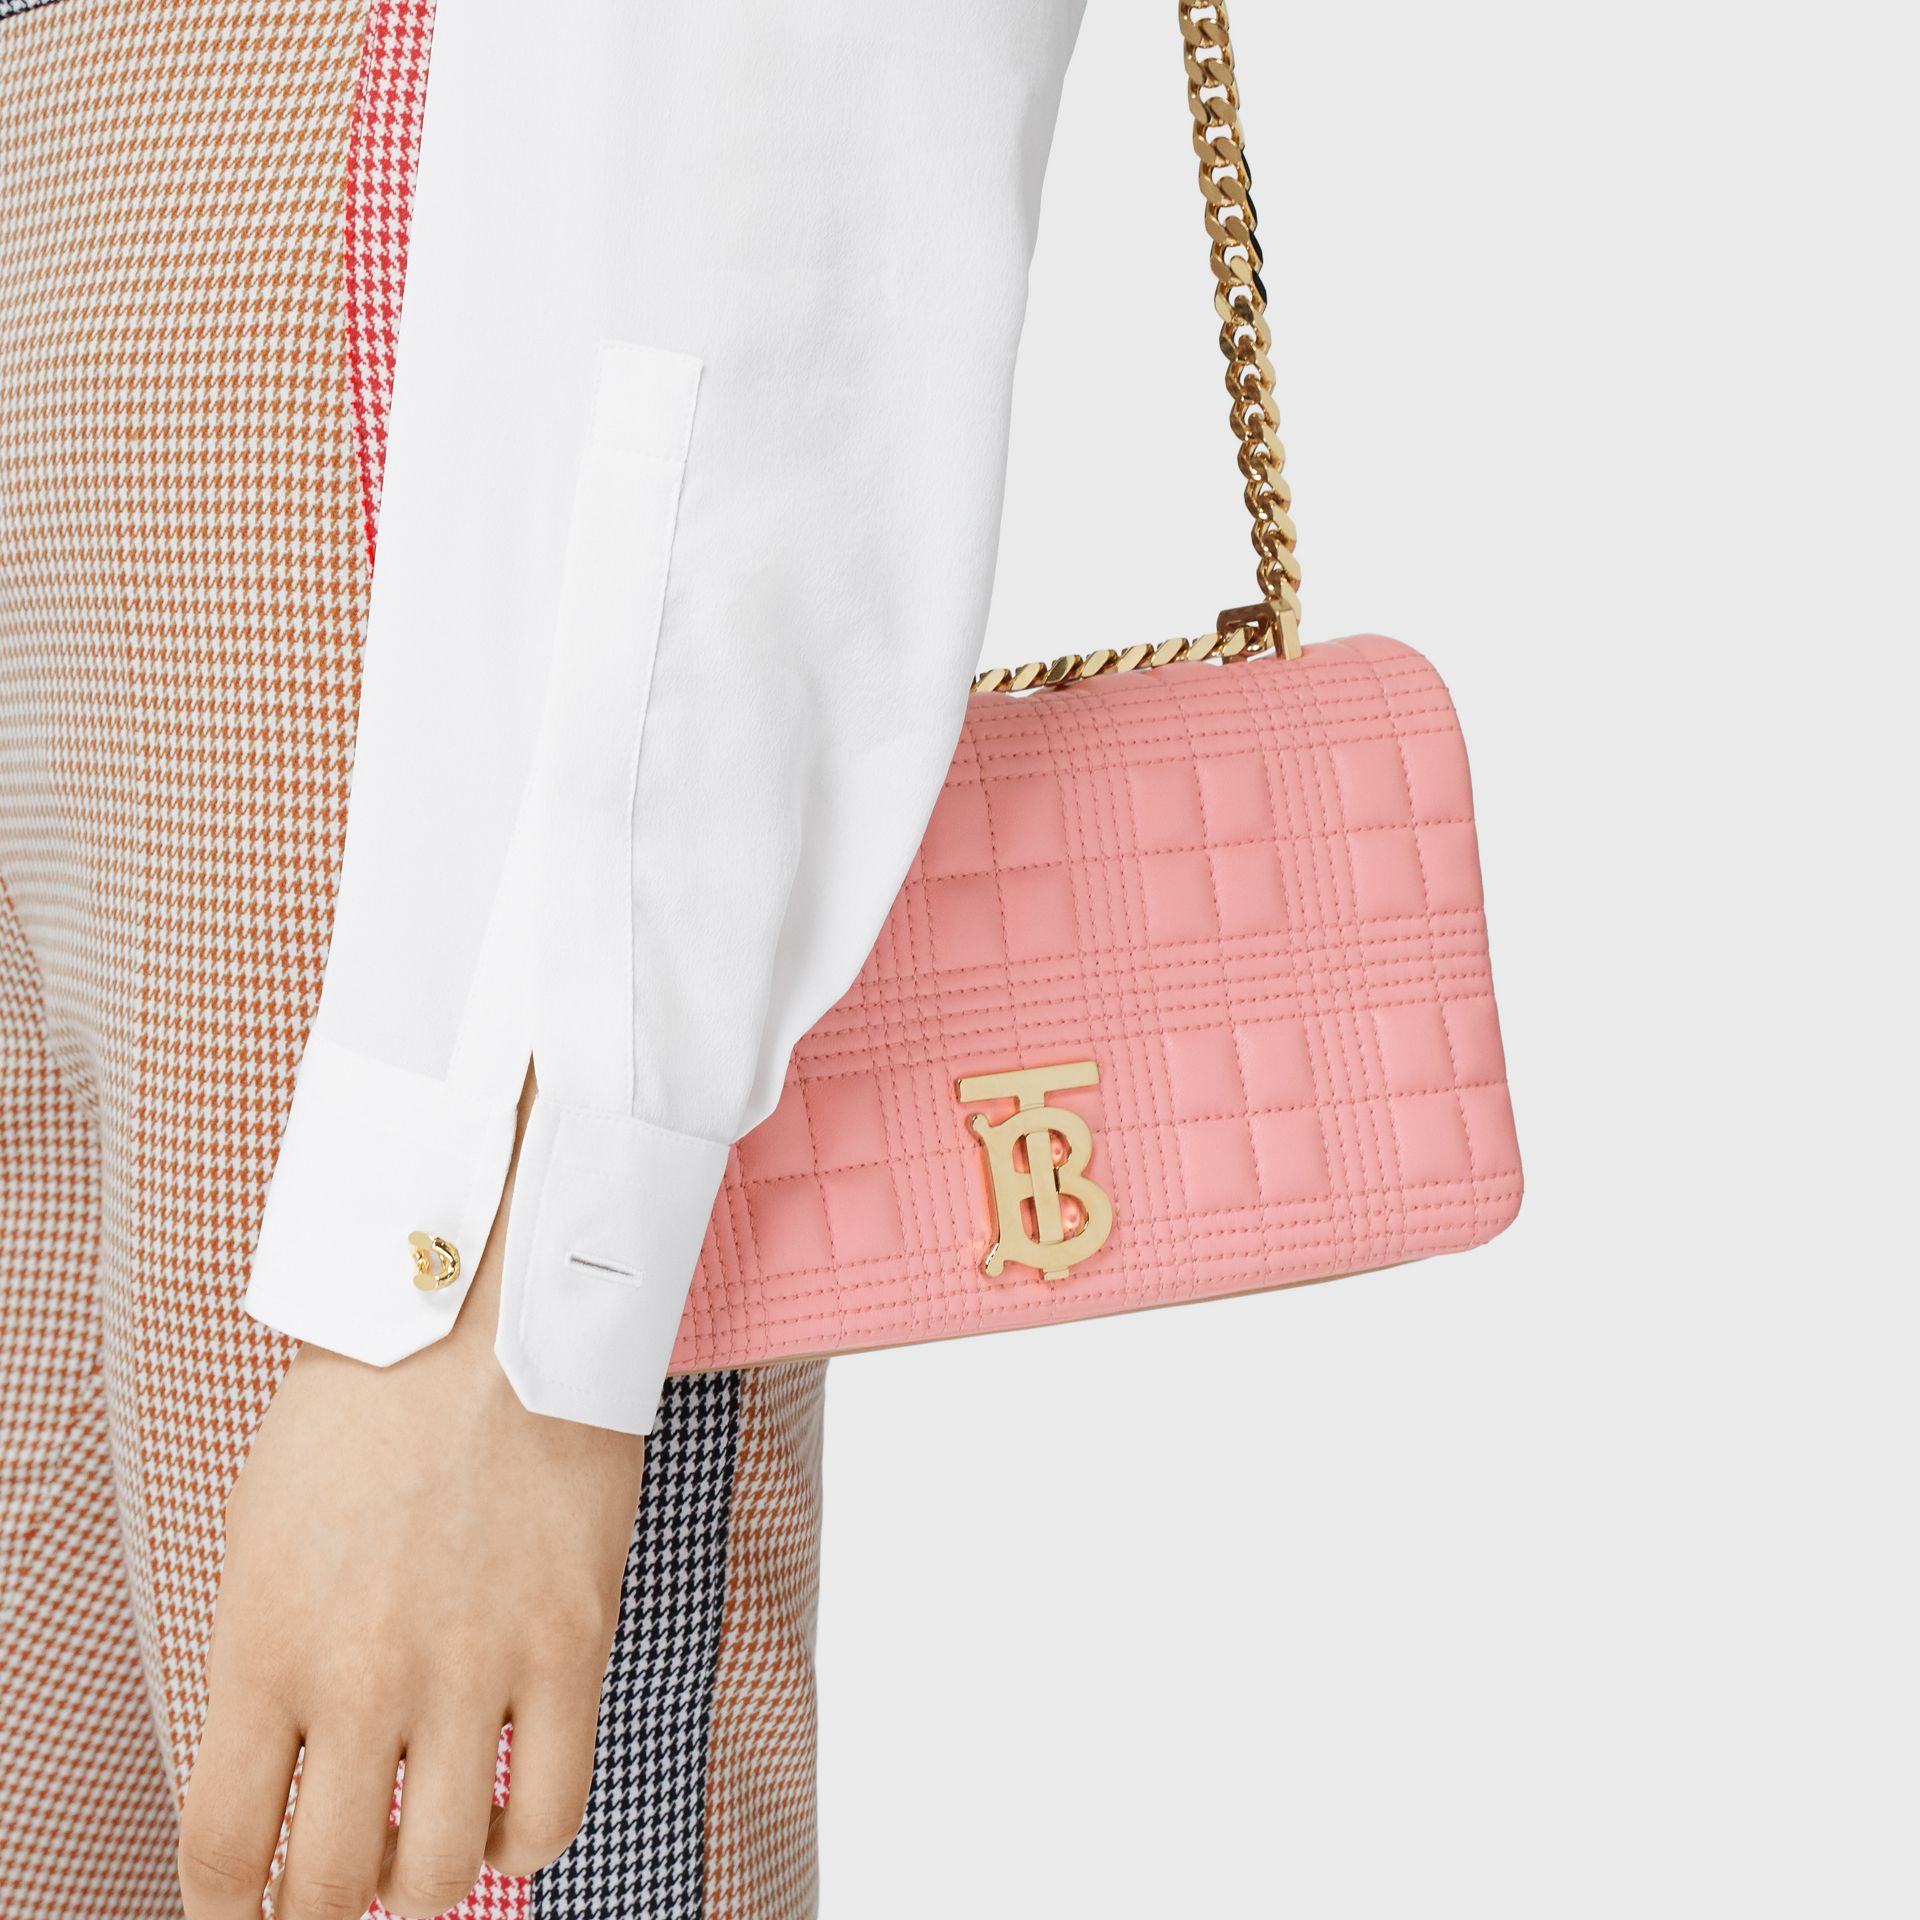 Small Quilted Two-tone Lambskin Lola Bag in Peony/camel - Women | Burberry Canada - gallery image 2